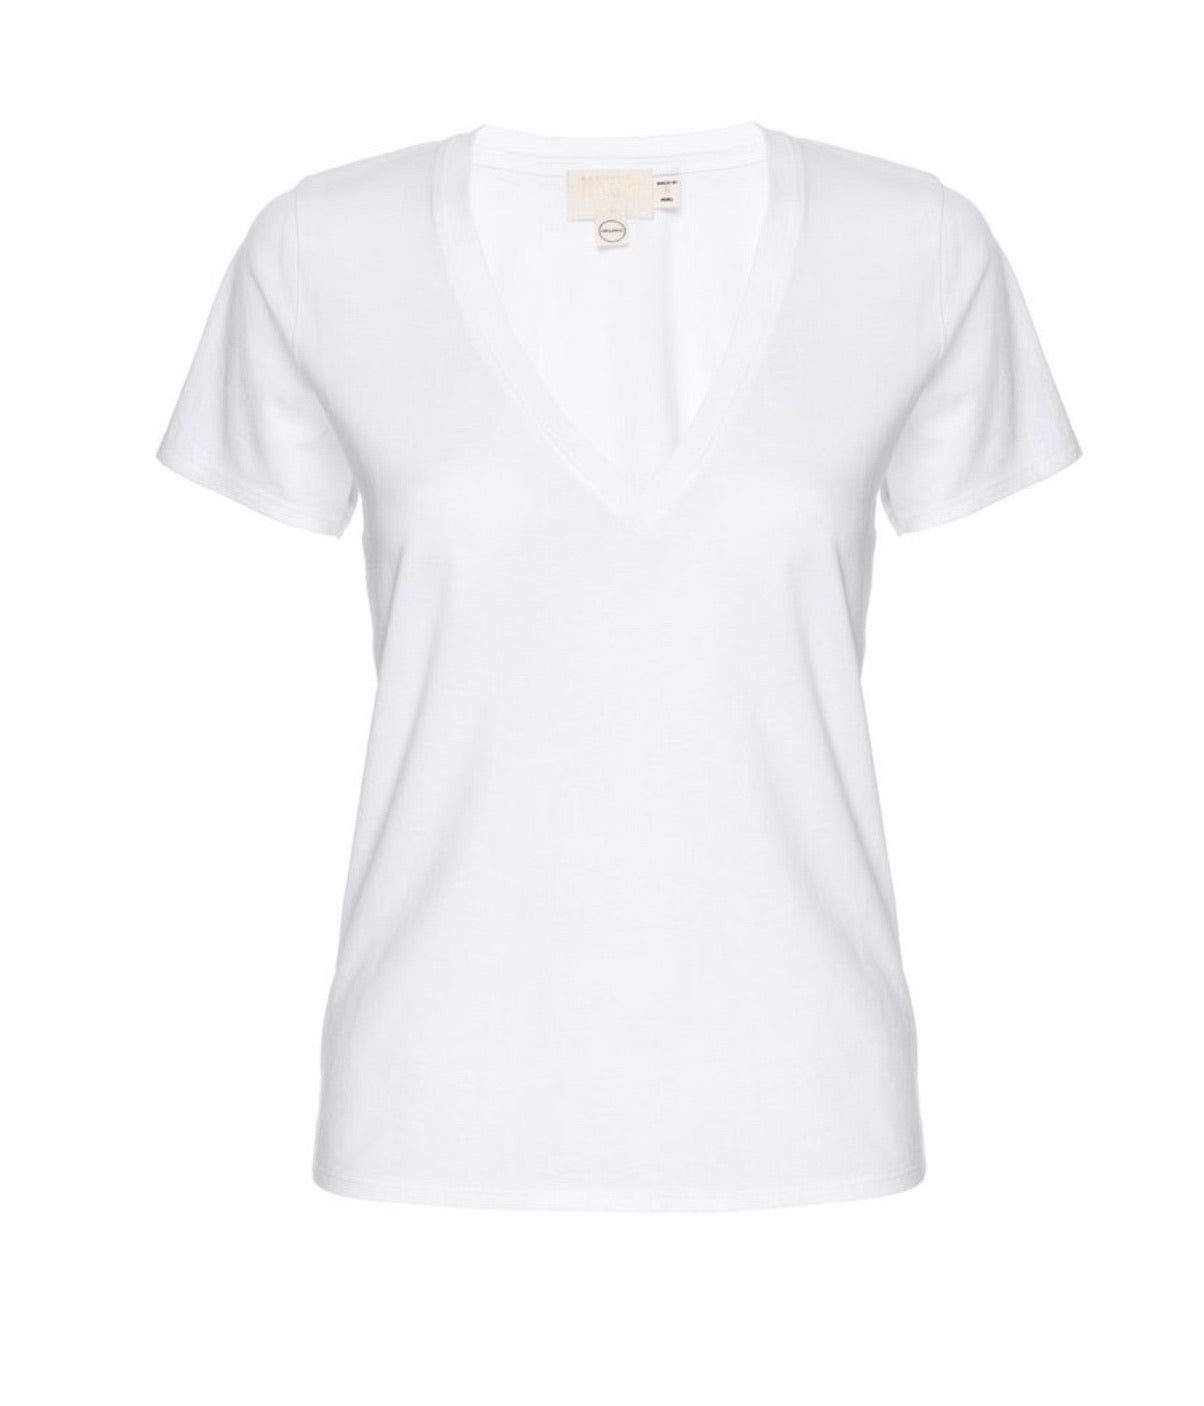 Blair deep v tee- white